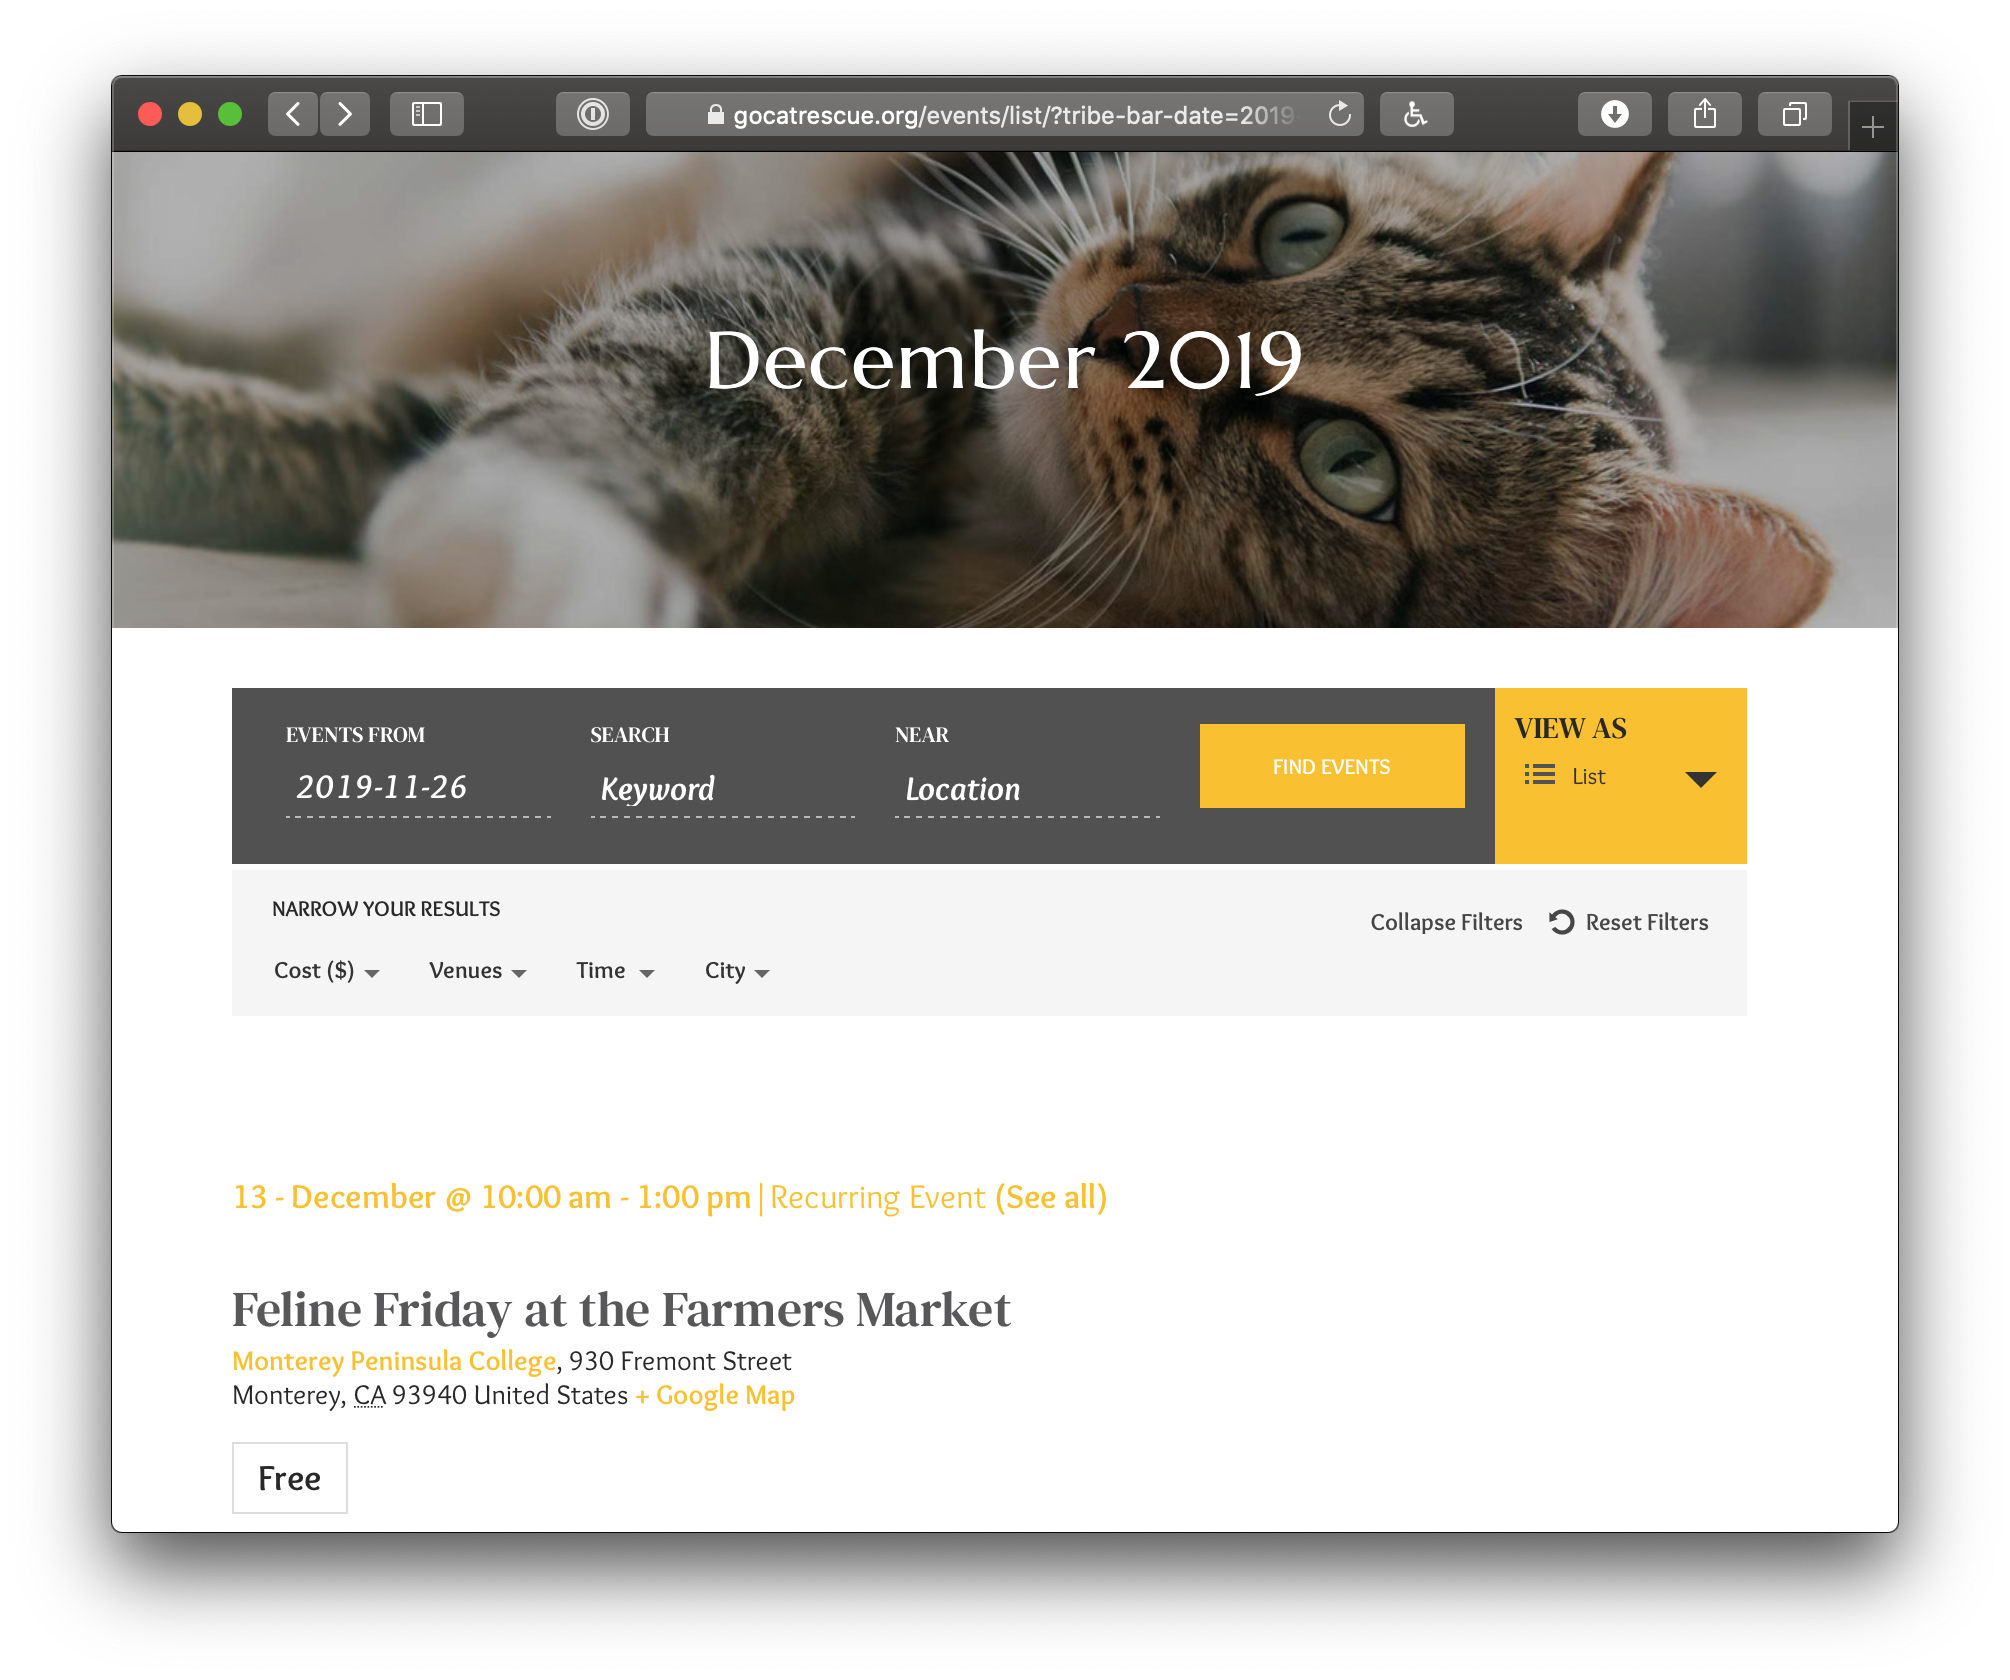 Showing the calendar header. The top shows the page title against a large background image of a cat. Below it is the event search form followed by a set of options for filtering events by cost, venue, time and city.